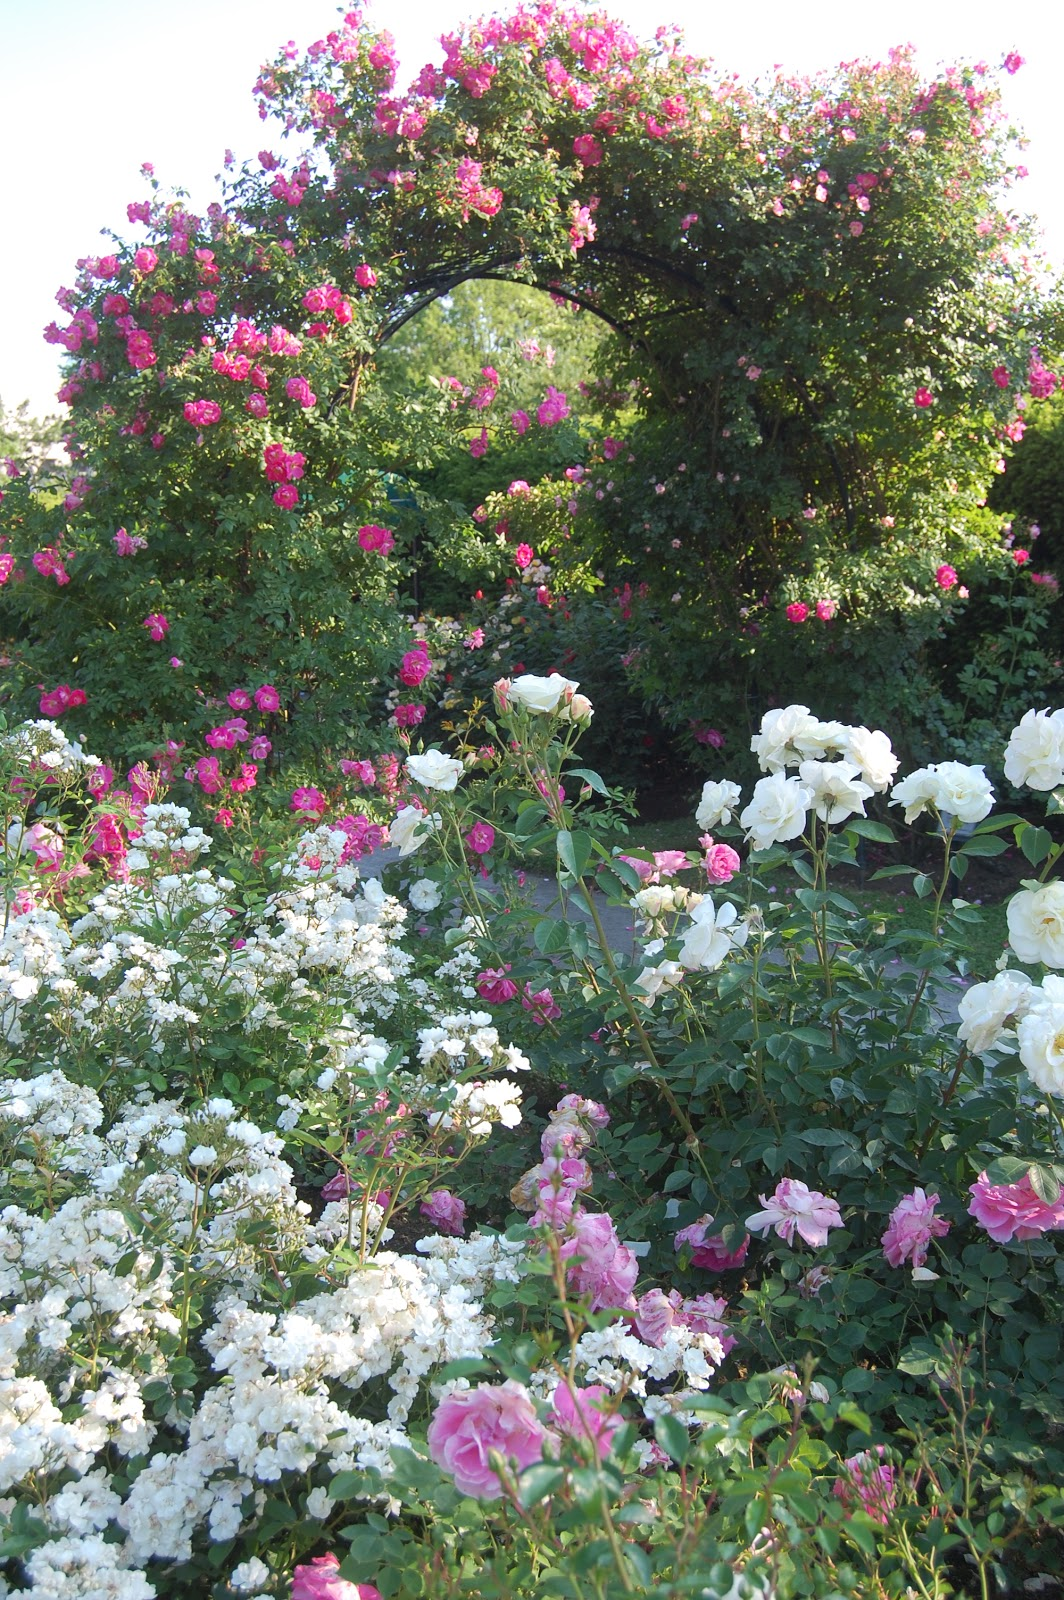 Full Garden In Backyard: Sprouts: Boston's Kelleher Rose Garden In Full Bloom Part 2